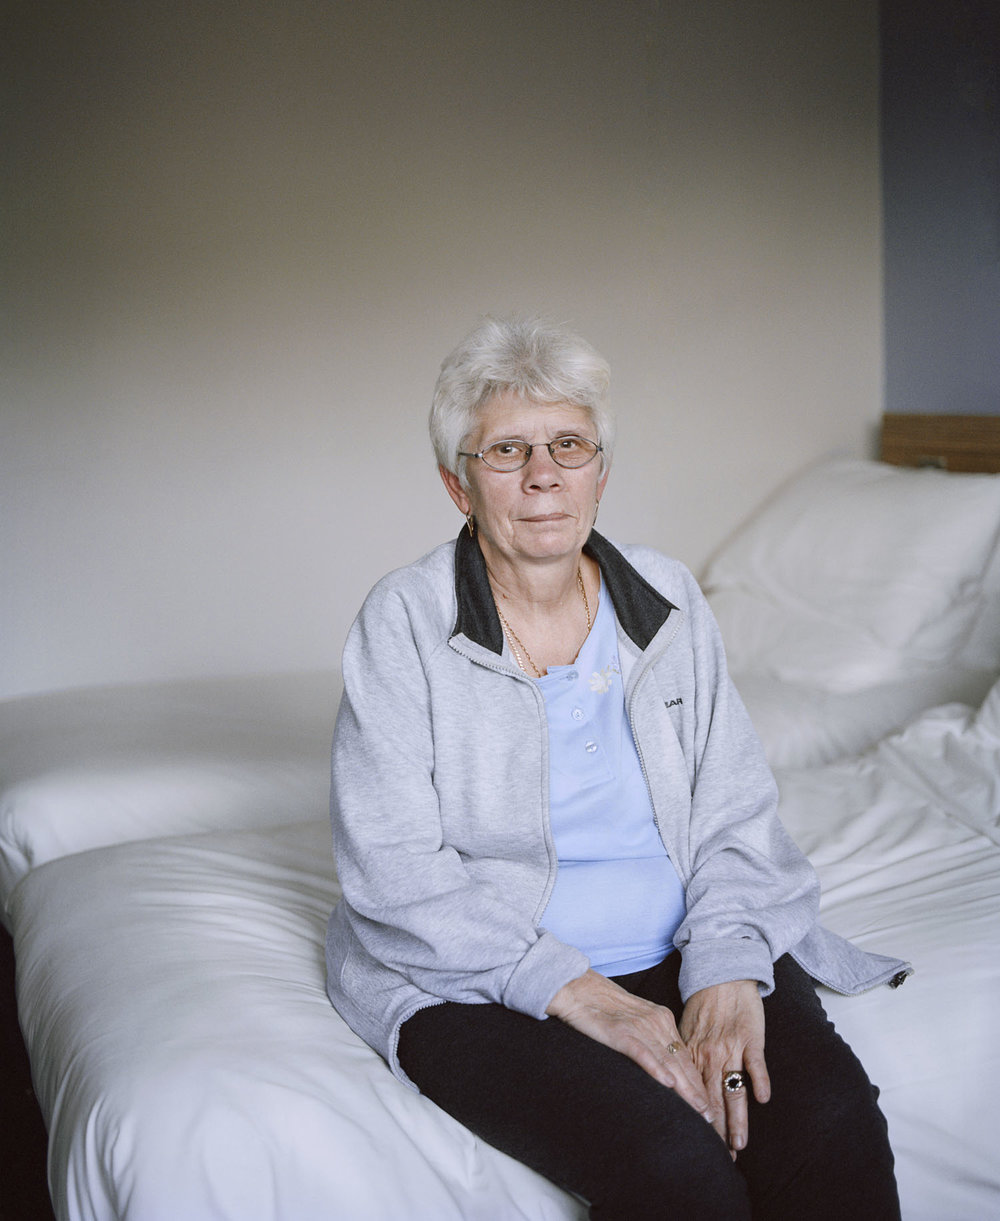 Sandra Mickiewicz Happy Club Pensioner sat on her bed against white background